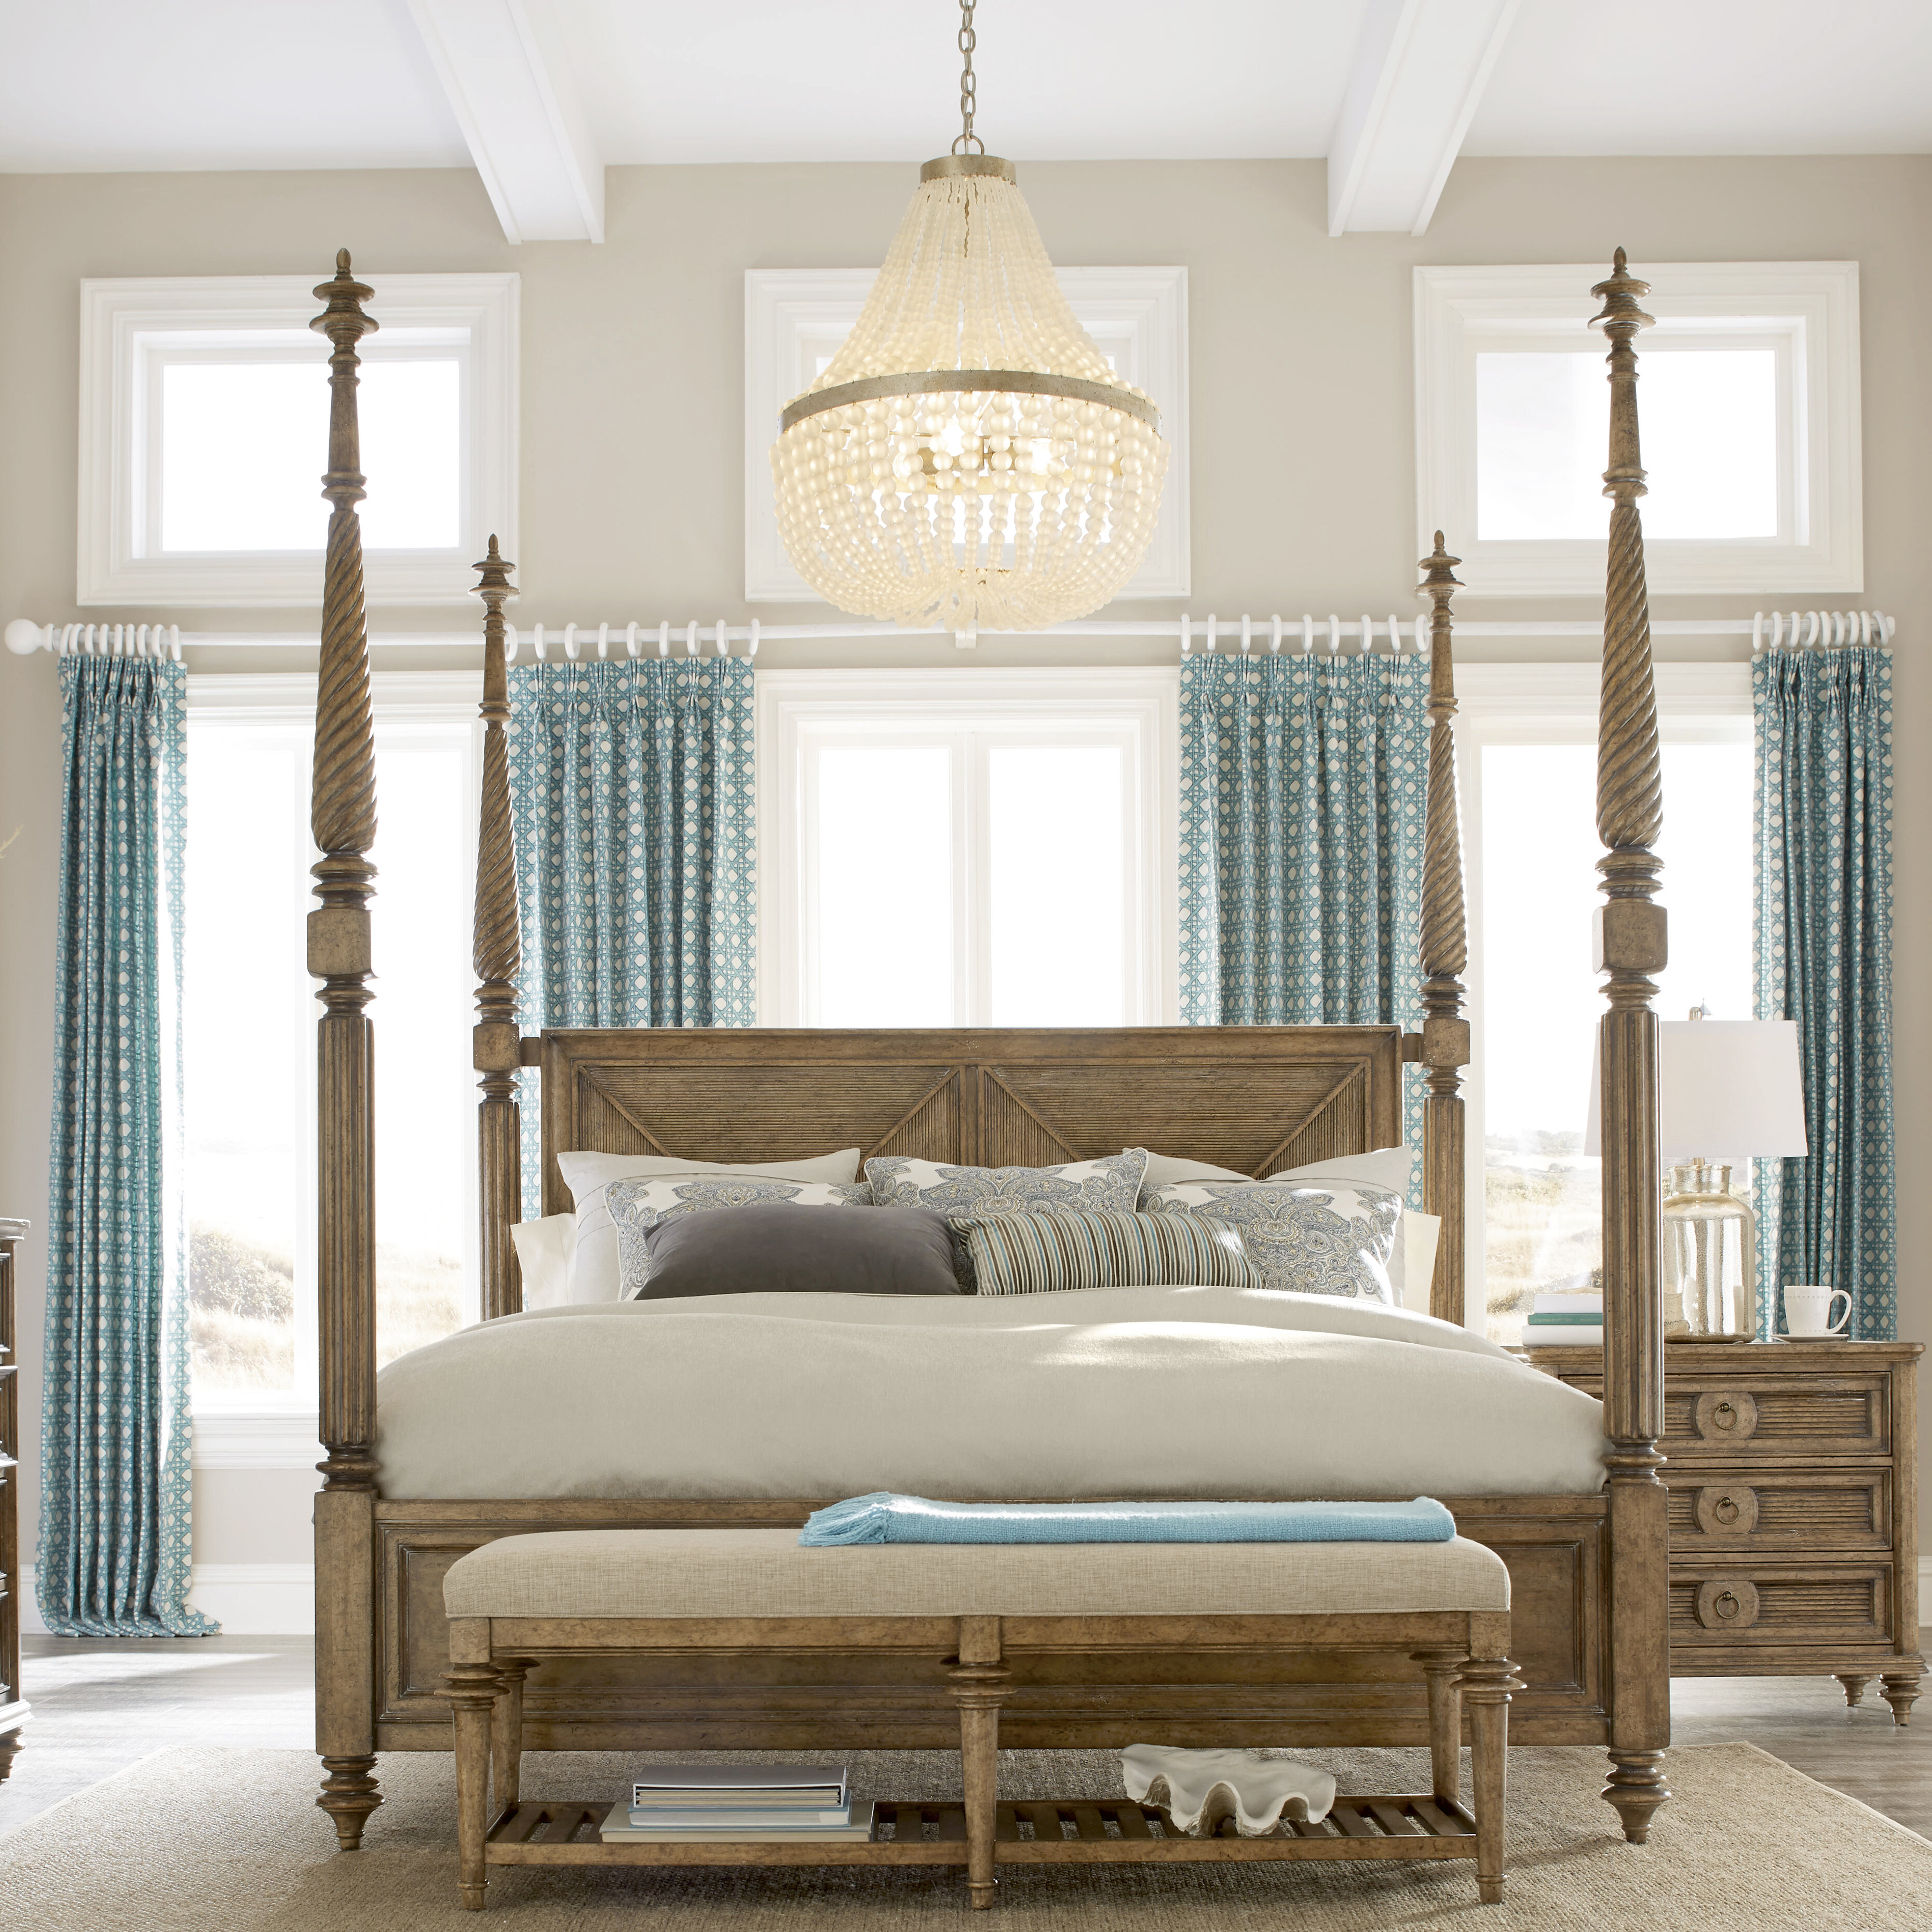 Bon Bay Isle Home Gerakies California King Four Poster Bed With Canopy | Wayfair